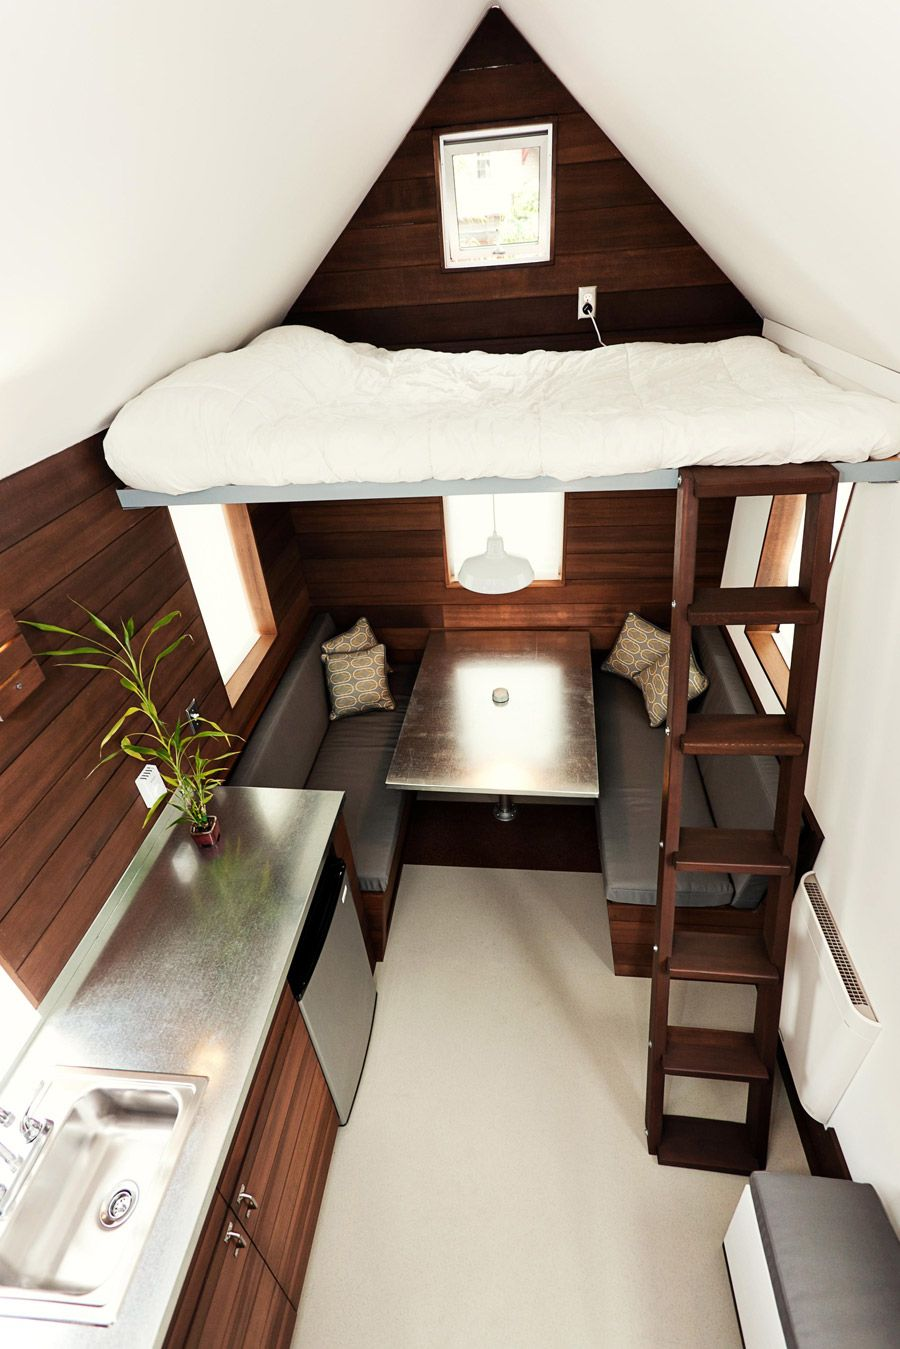 The Miter Box Tiny House From Shelter Wise A 150 Sq Ft Modern Tiny